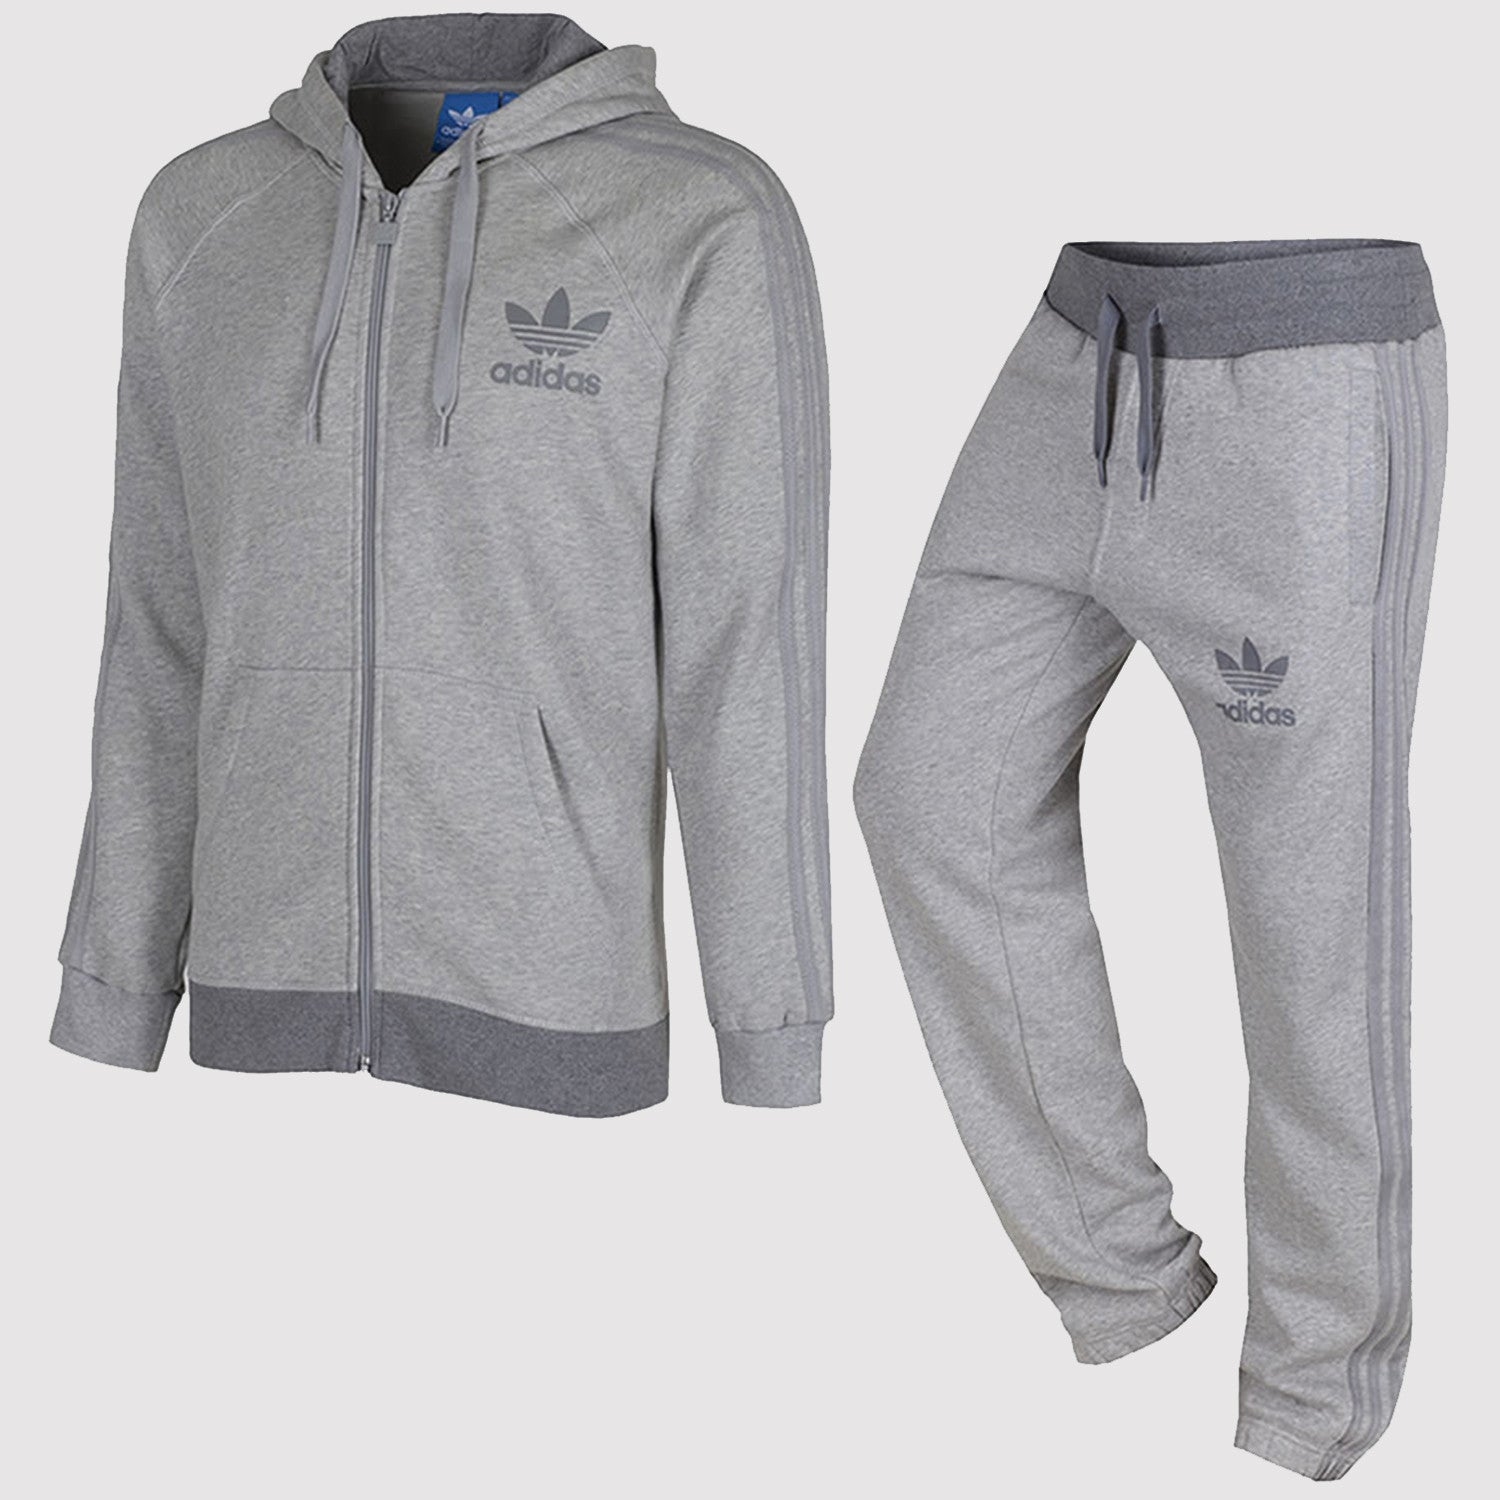 ADIDAS SPO HOODED FLOC MENS X53001 SIZE M at Amazon Men's